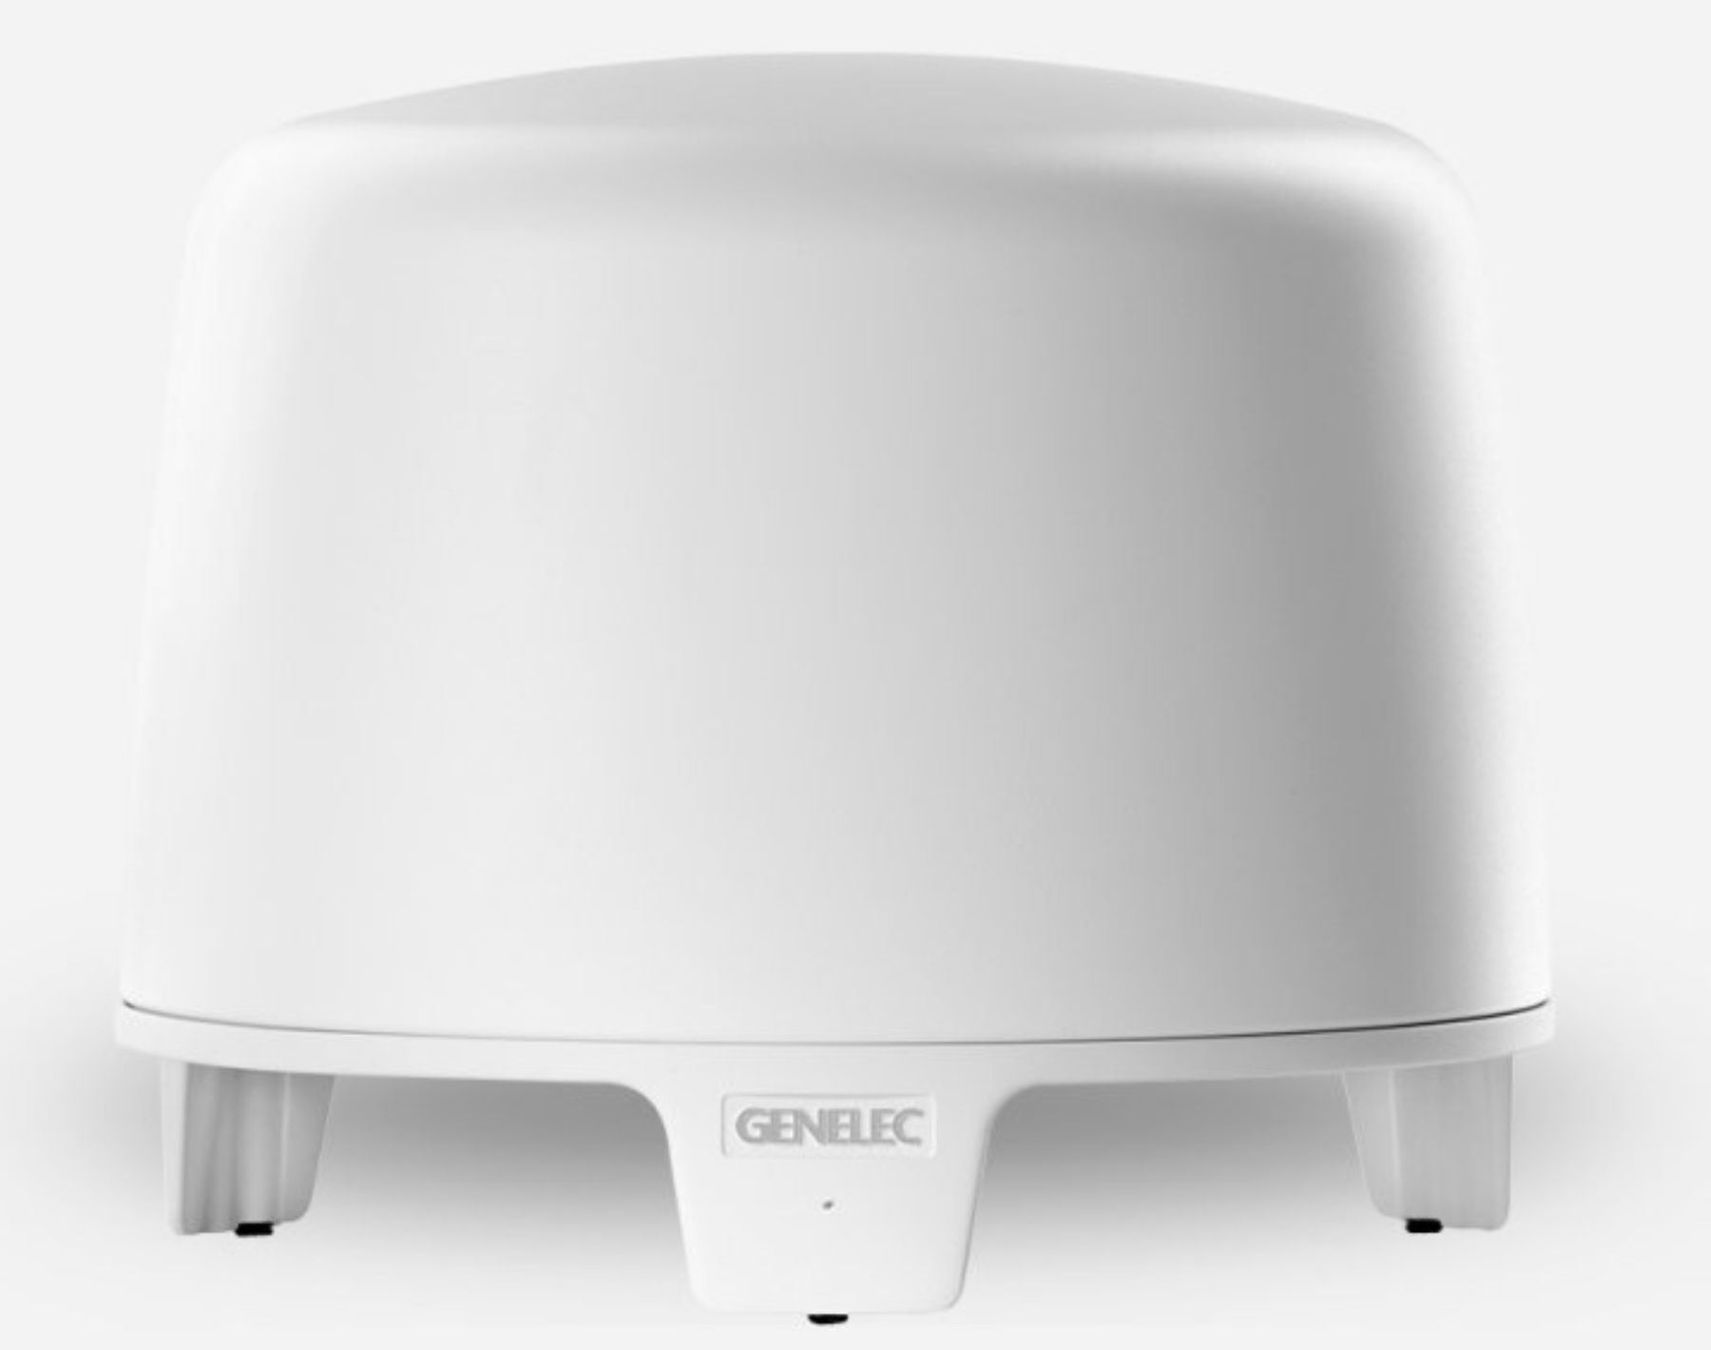 Genelec - F Two Active Subwoofer